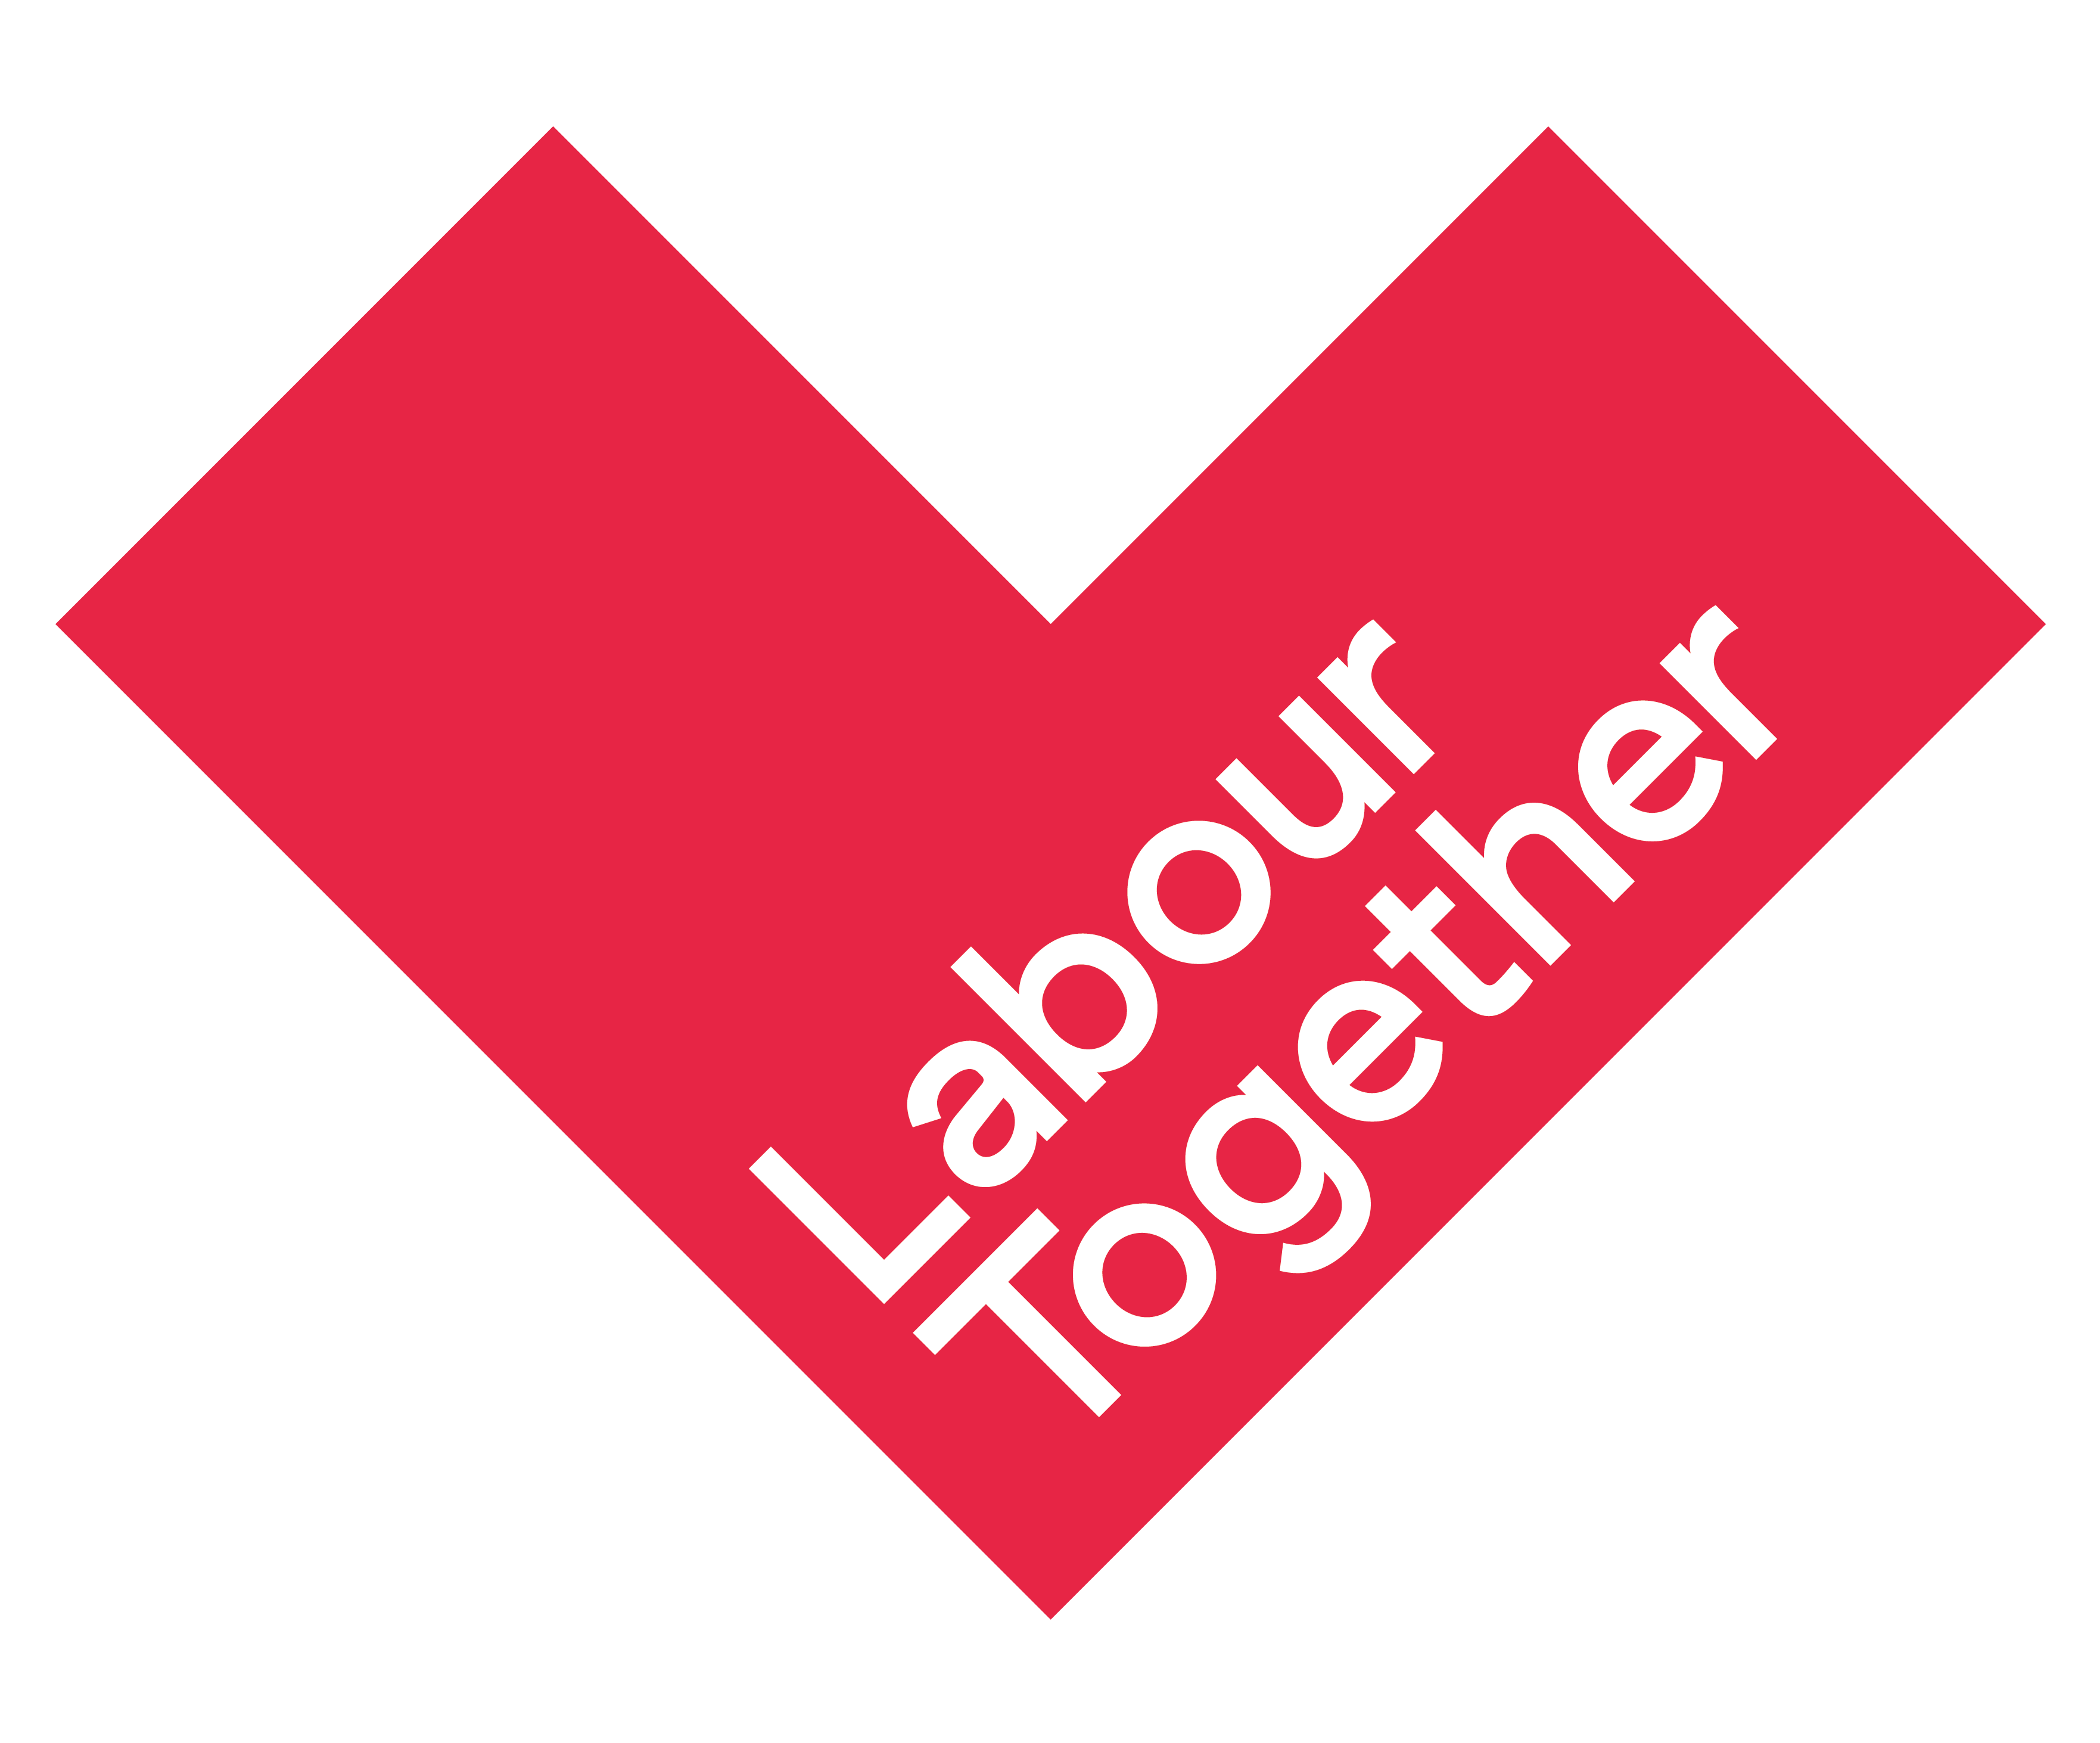 Labour Together